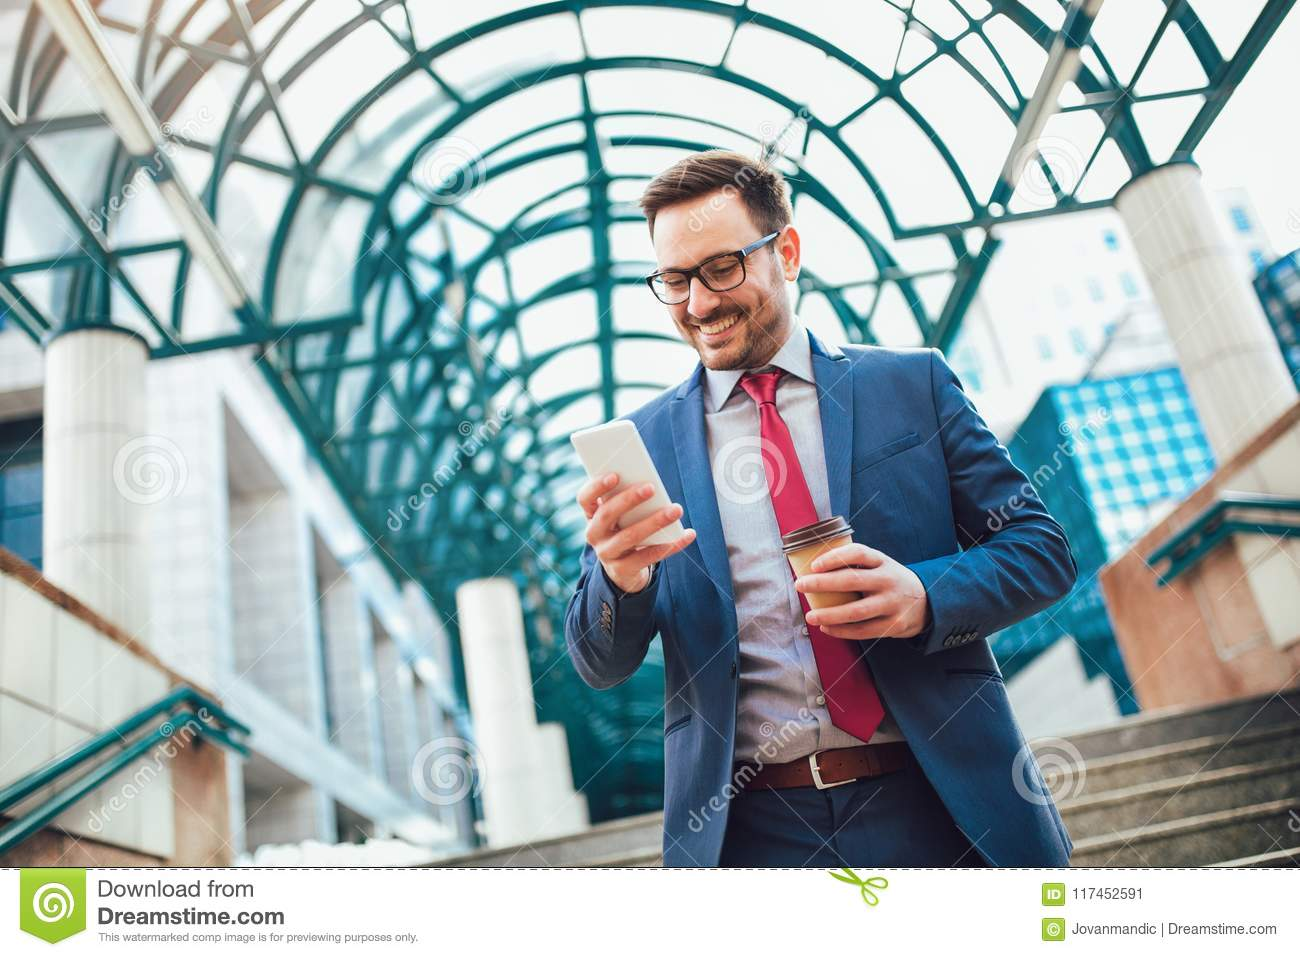 be0371bbb5 Businessman using mobile phone outside of office buildings in the  background. Young caucasian man holding smartphone for business work and  drink coffee to ...